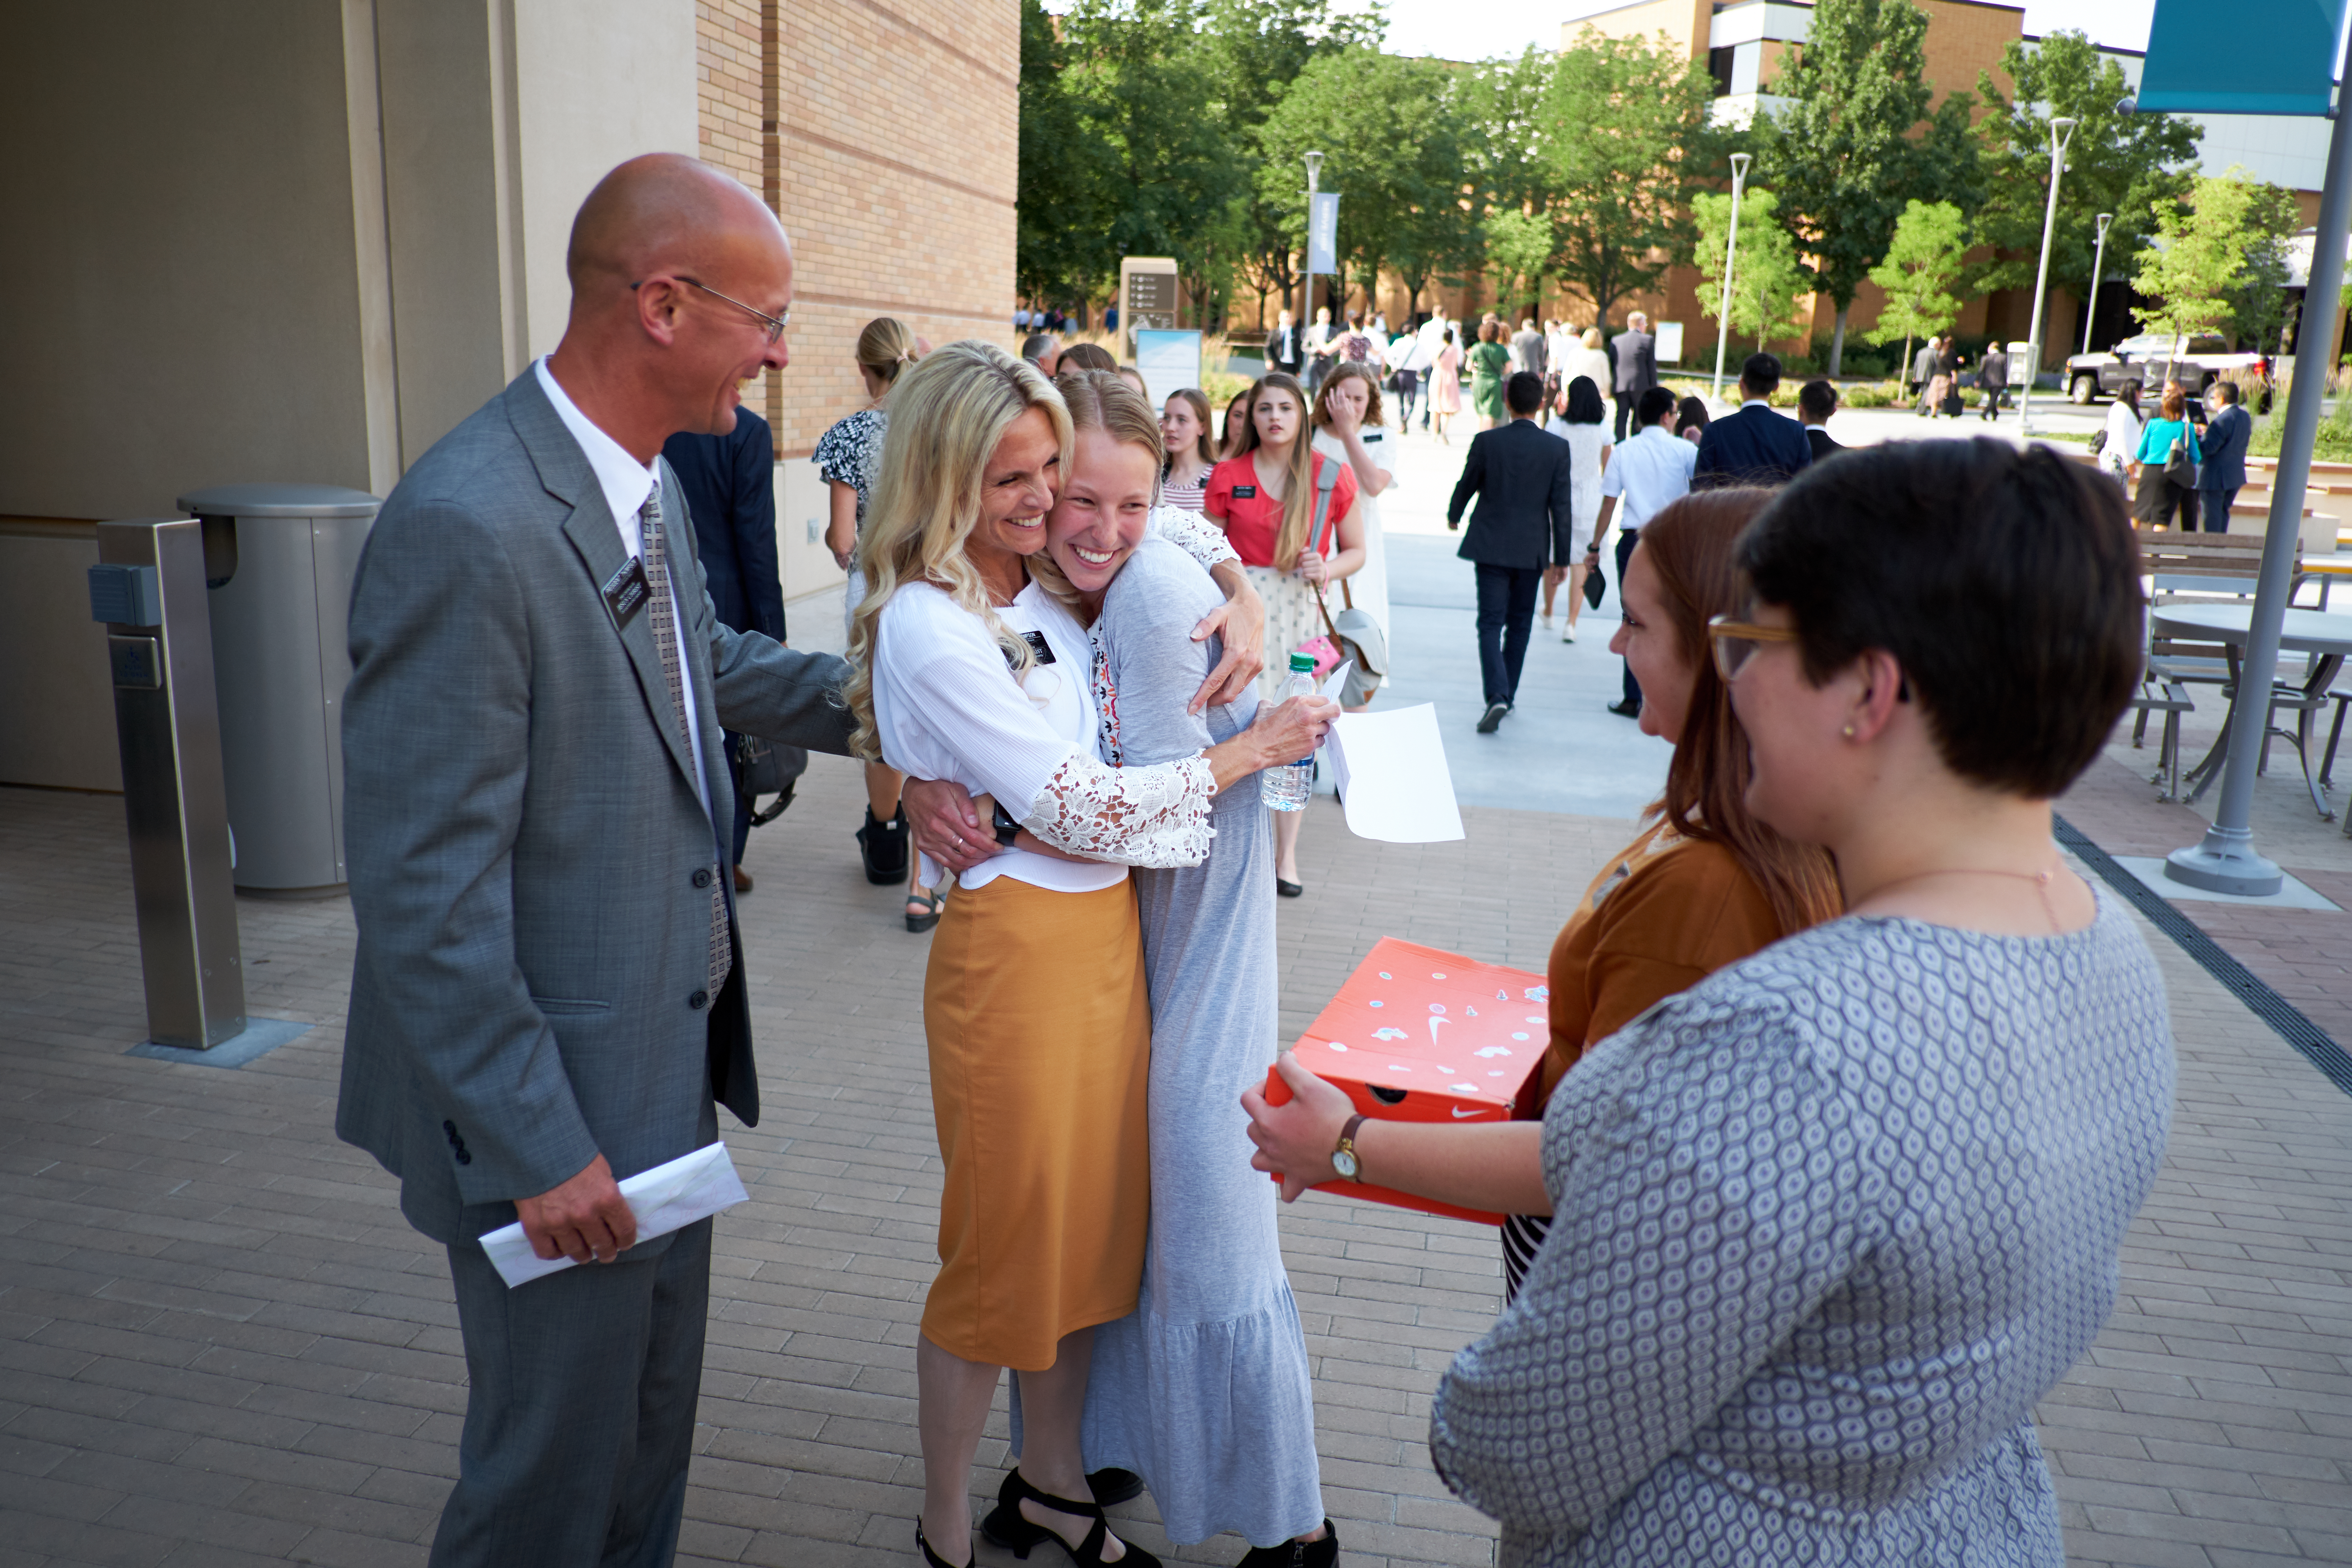 A mission president and his companion greet missionaries at the Provo Missionary Training Center during the 2018 Mission Leadership Seminar on June 24-26.